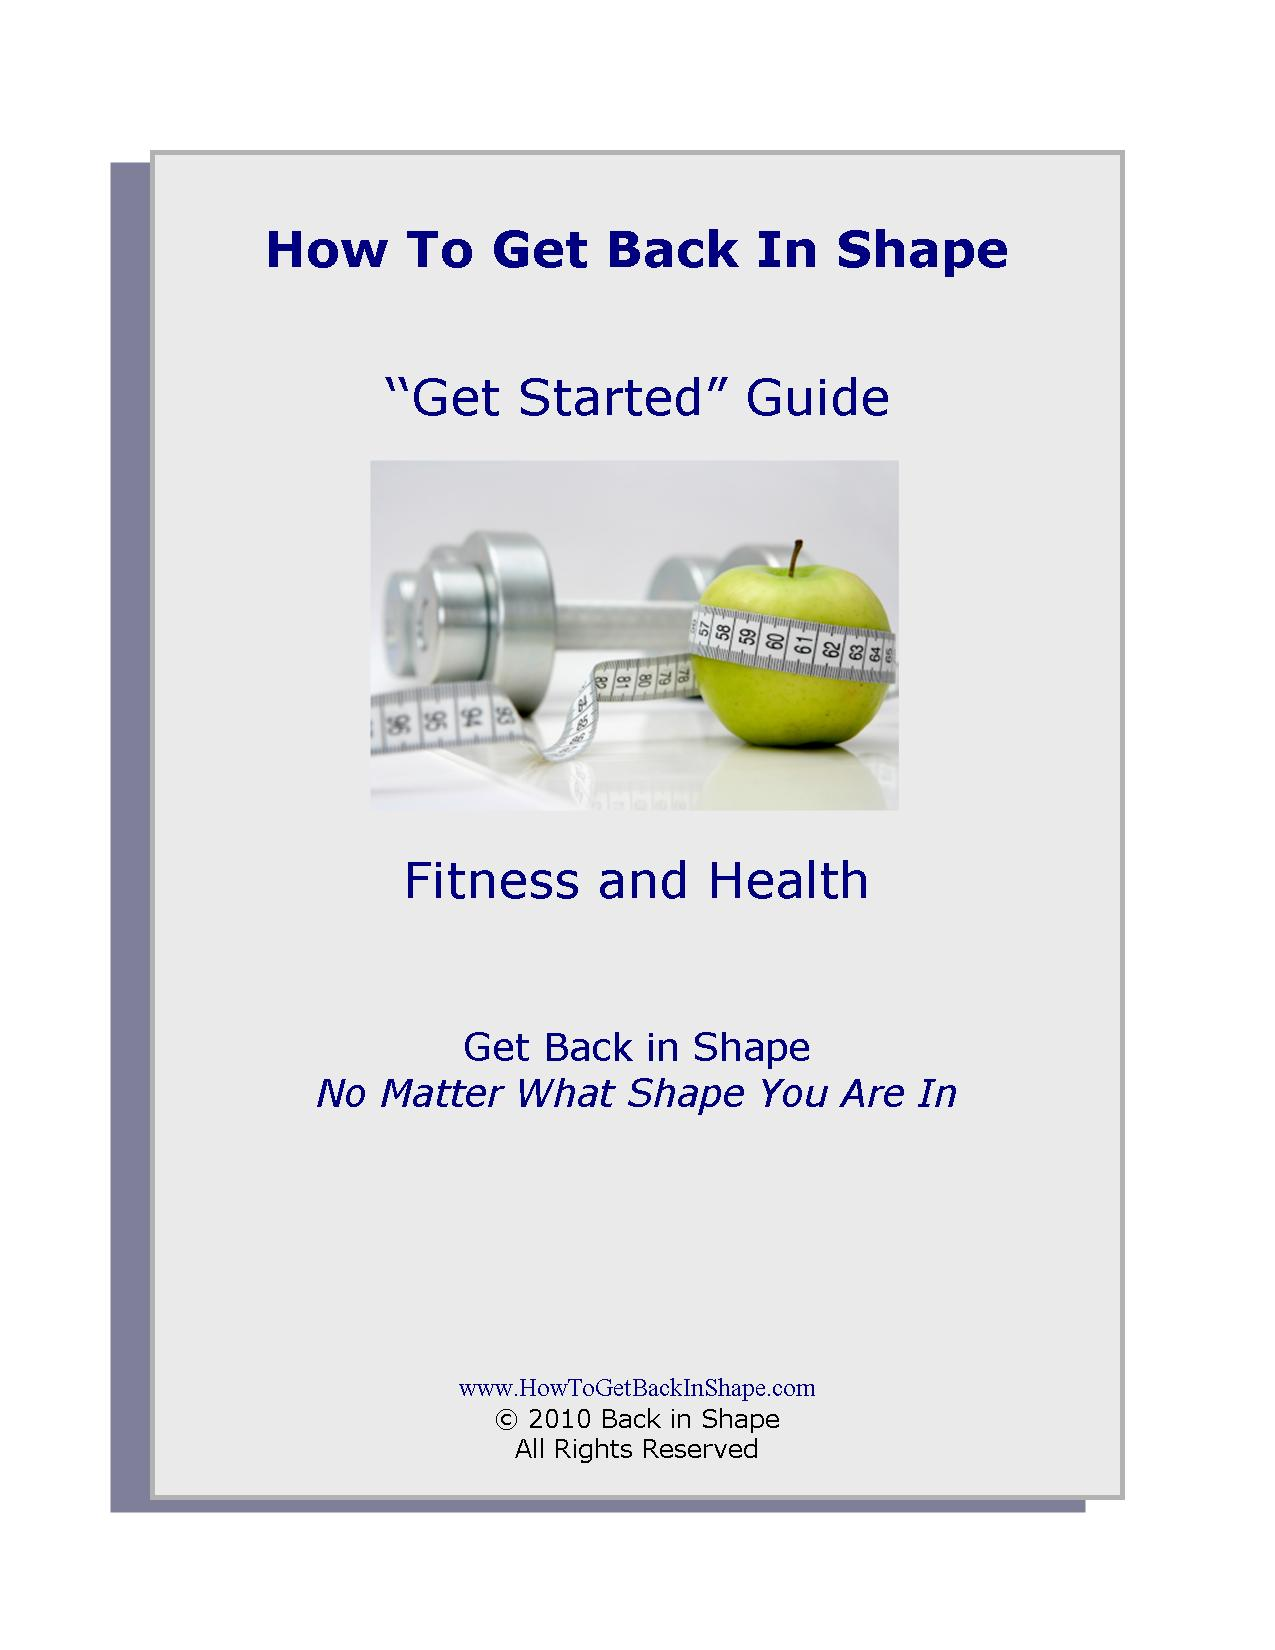 How To Get Back In Shape Free Get Started Guide